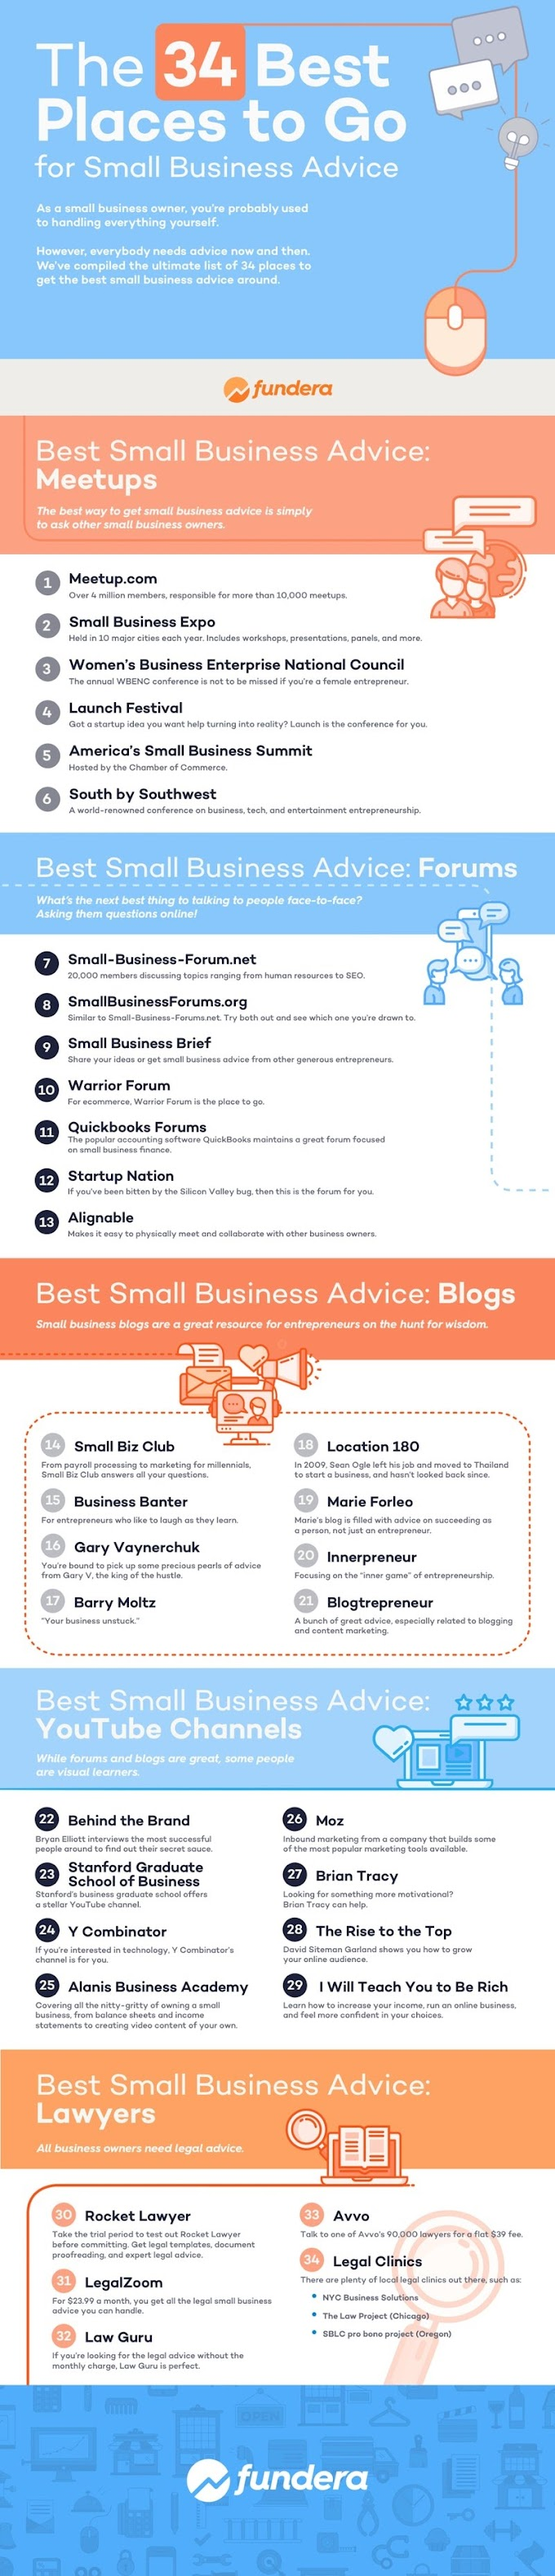 The 34 Best Places to Go for Small Business Advice - #Infographic